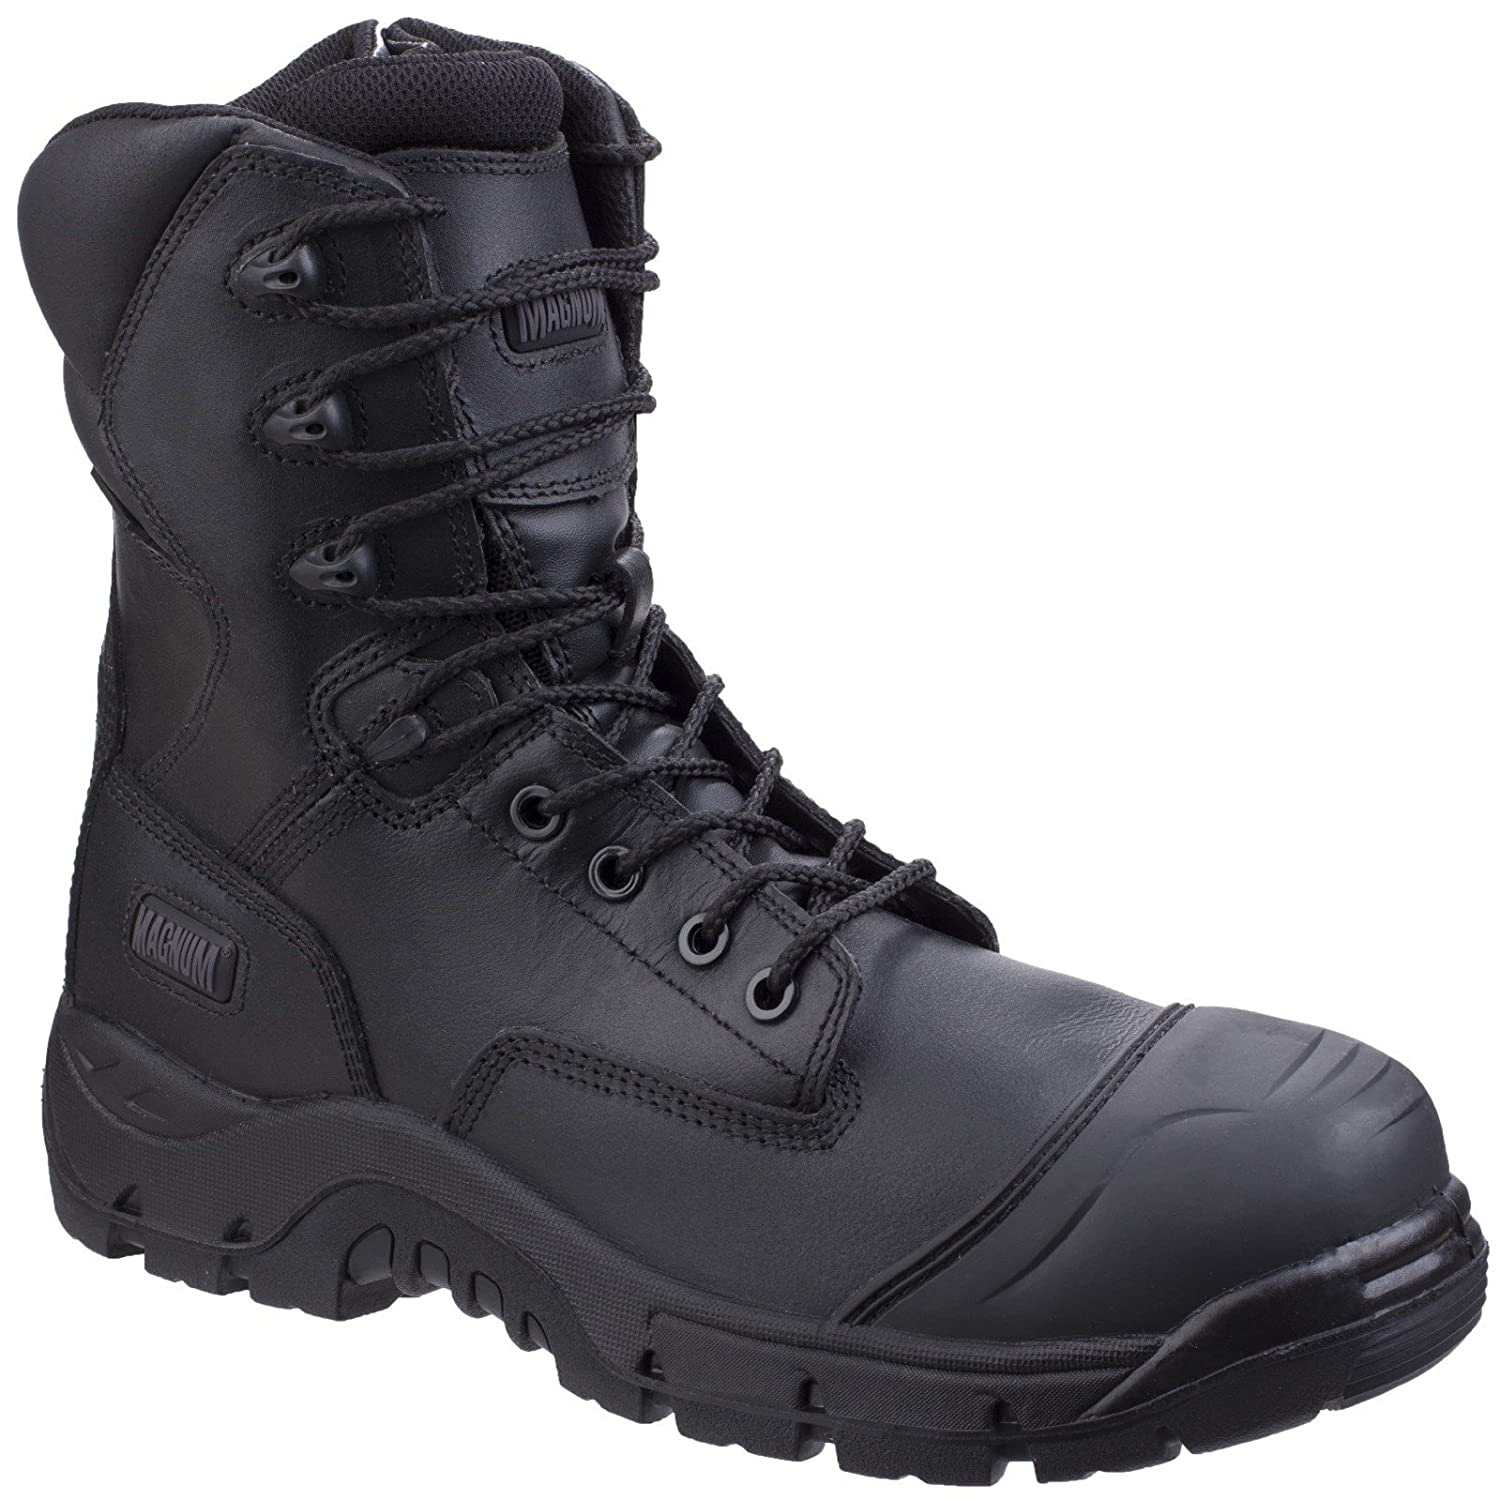 Magnum Unisex Adults' Precision Rigmaster Sz Ct Cp Wp Work Boots M801365